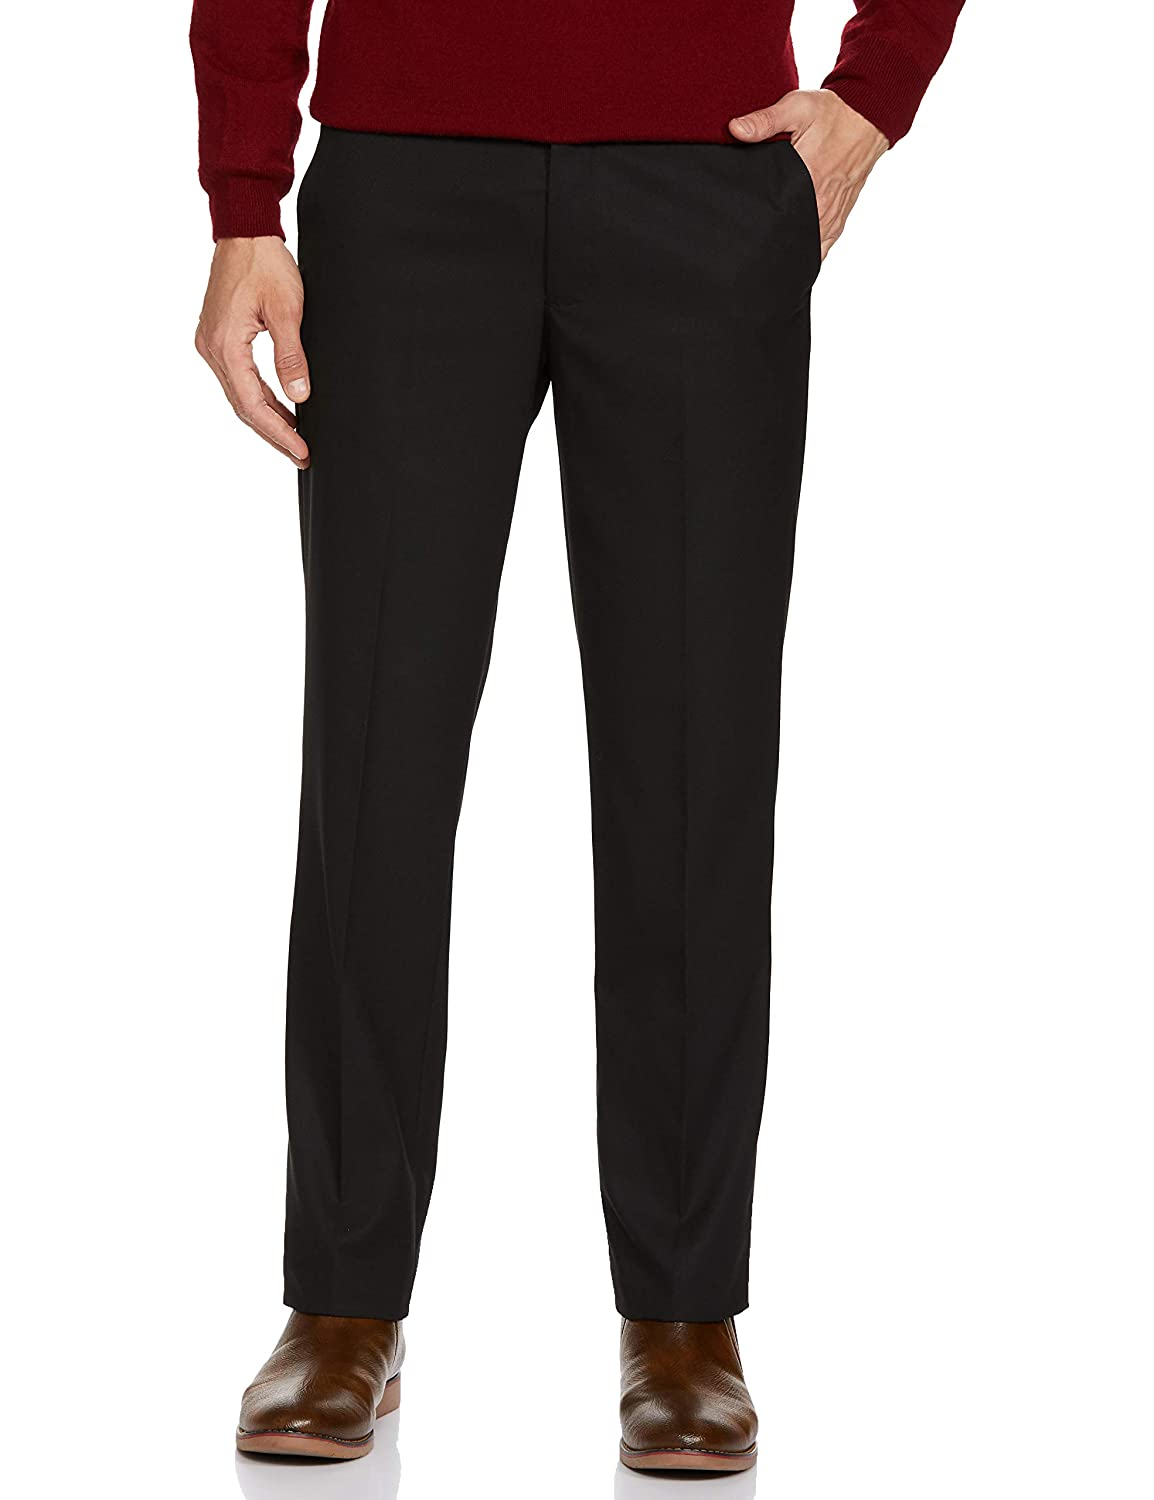 black pants for civil services and upsc